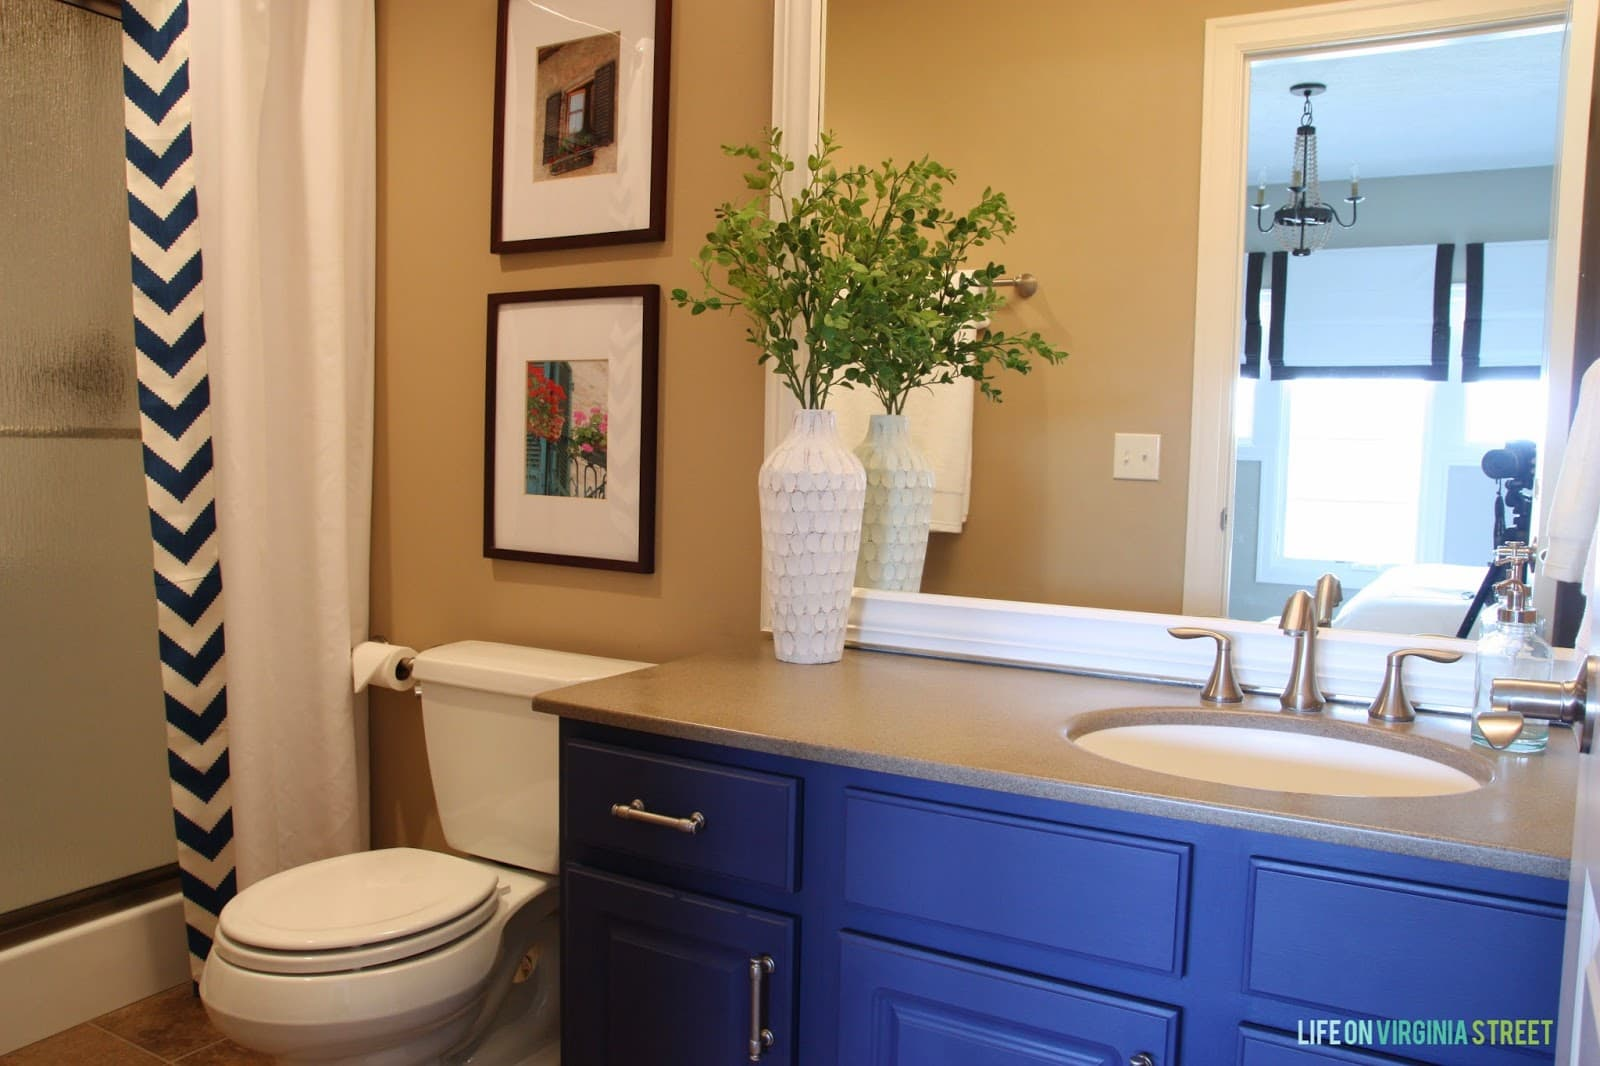 Here's the finished look of our new bold bathroom! I love the blue vanity and the DIY no sew shower curtain.